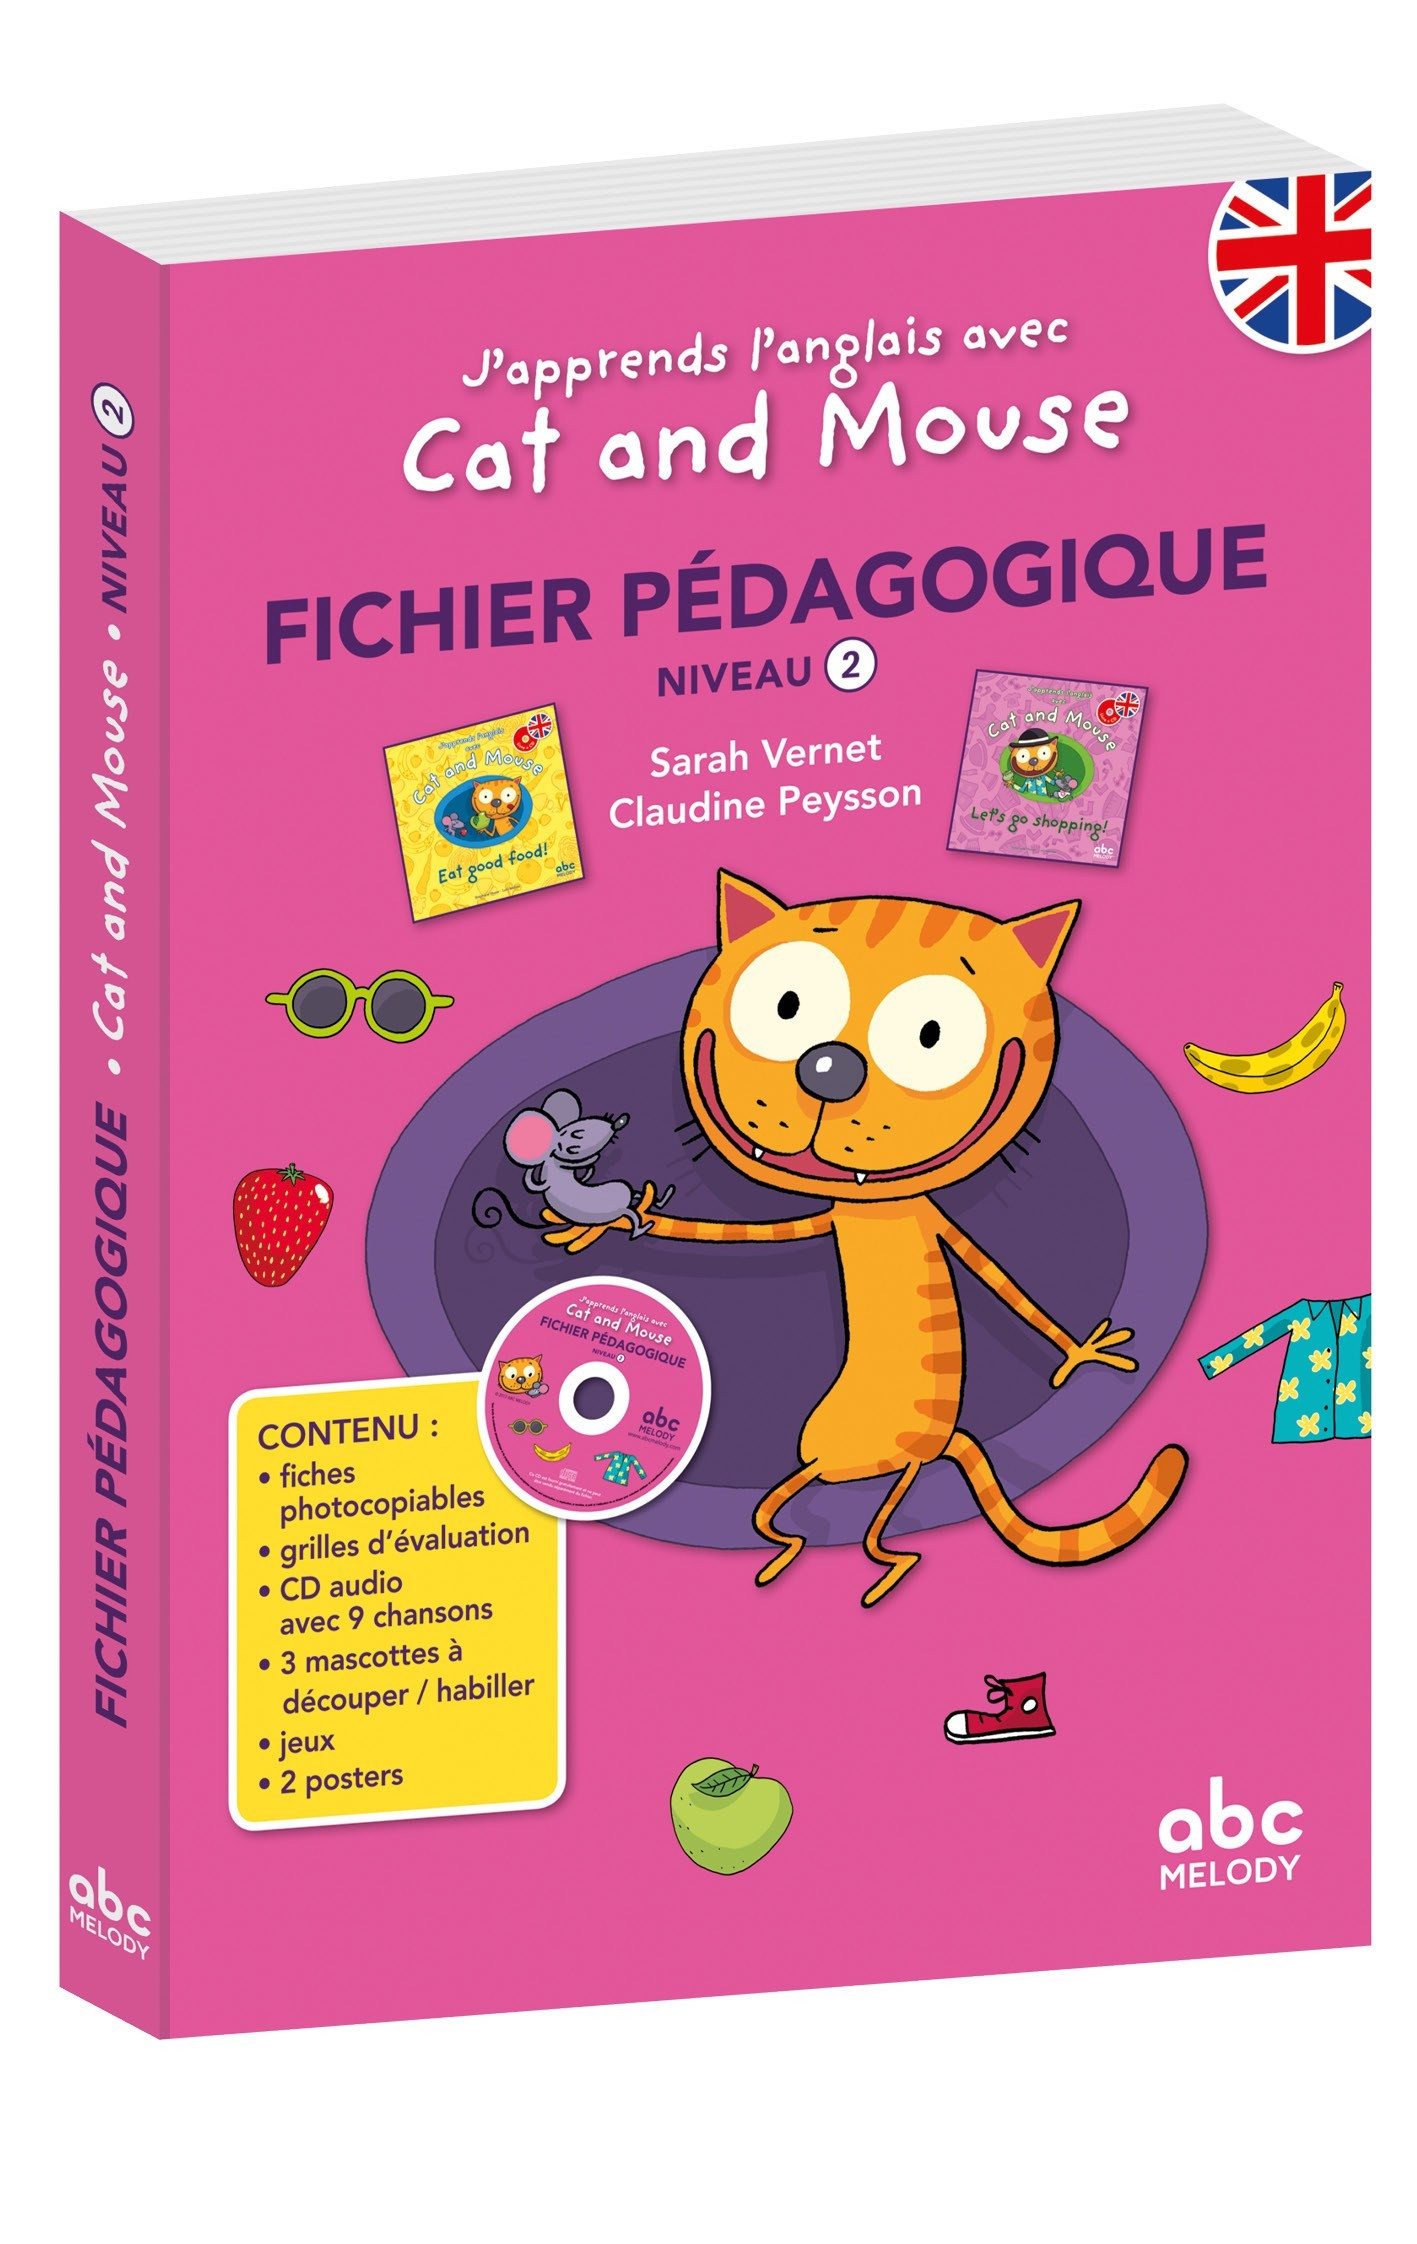 J'APPRENDS L'ANGLAIS AVEC CAT AND MOUSE - FICHIER PEDAGOGIQUE - NIVEA